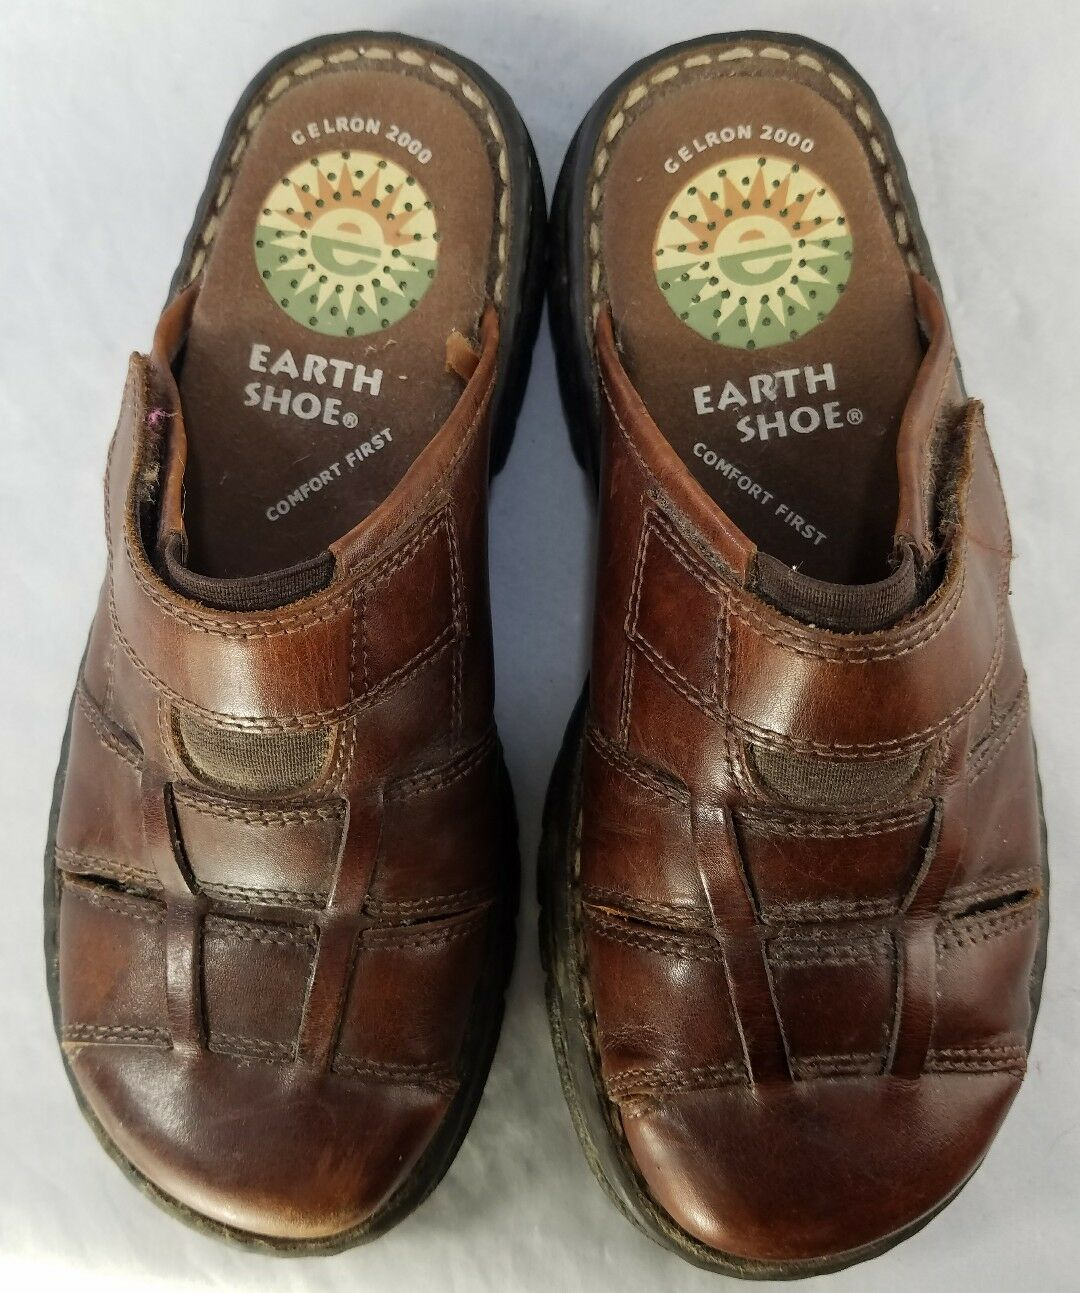 Earth Shoe Gelron 2000 Closed Toe 6 Slip On Sandals Size 6 Toe Women's 043847